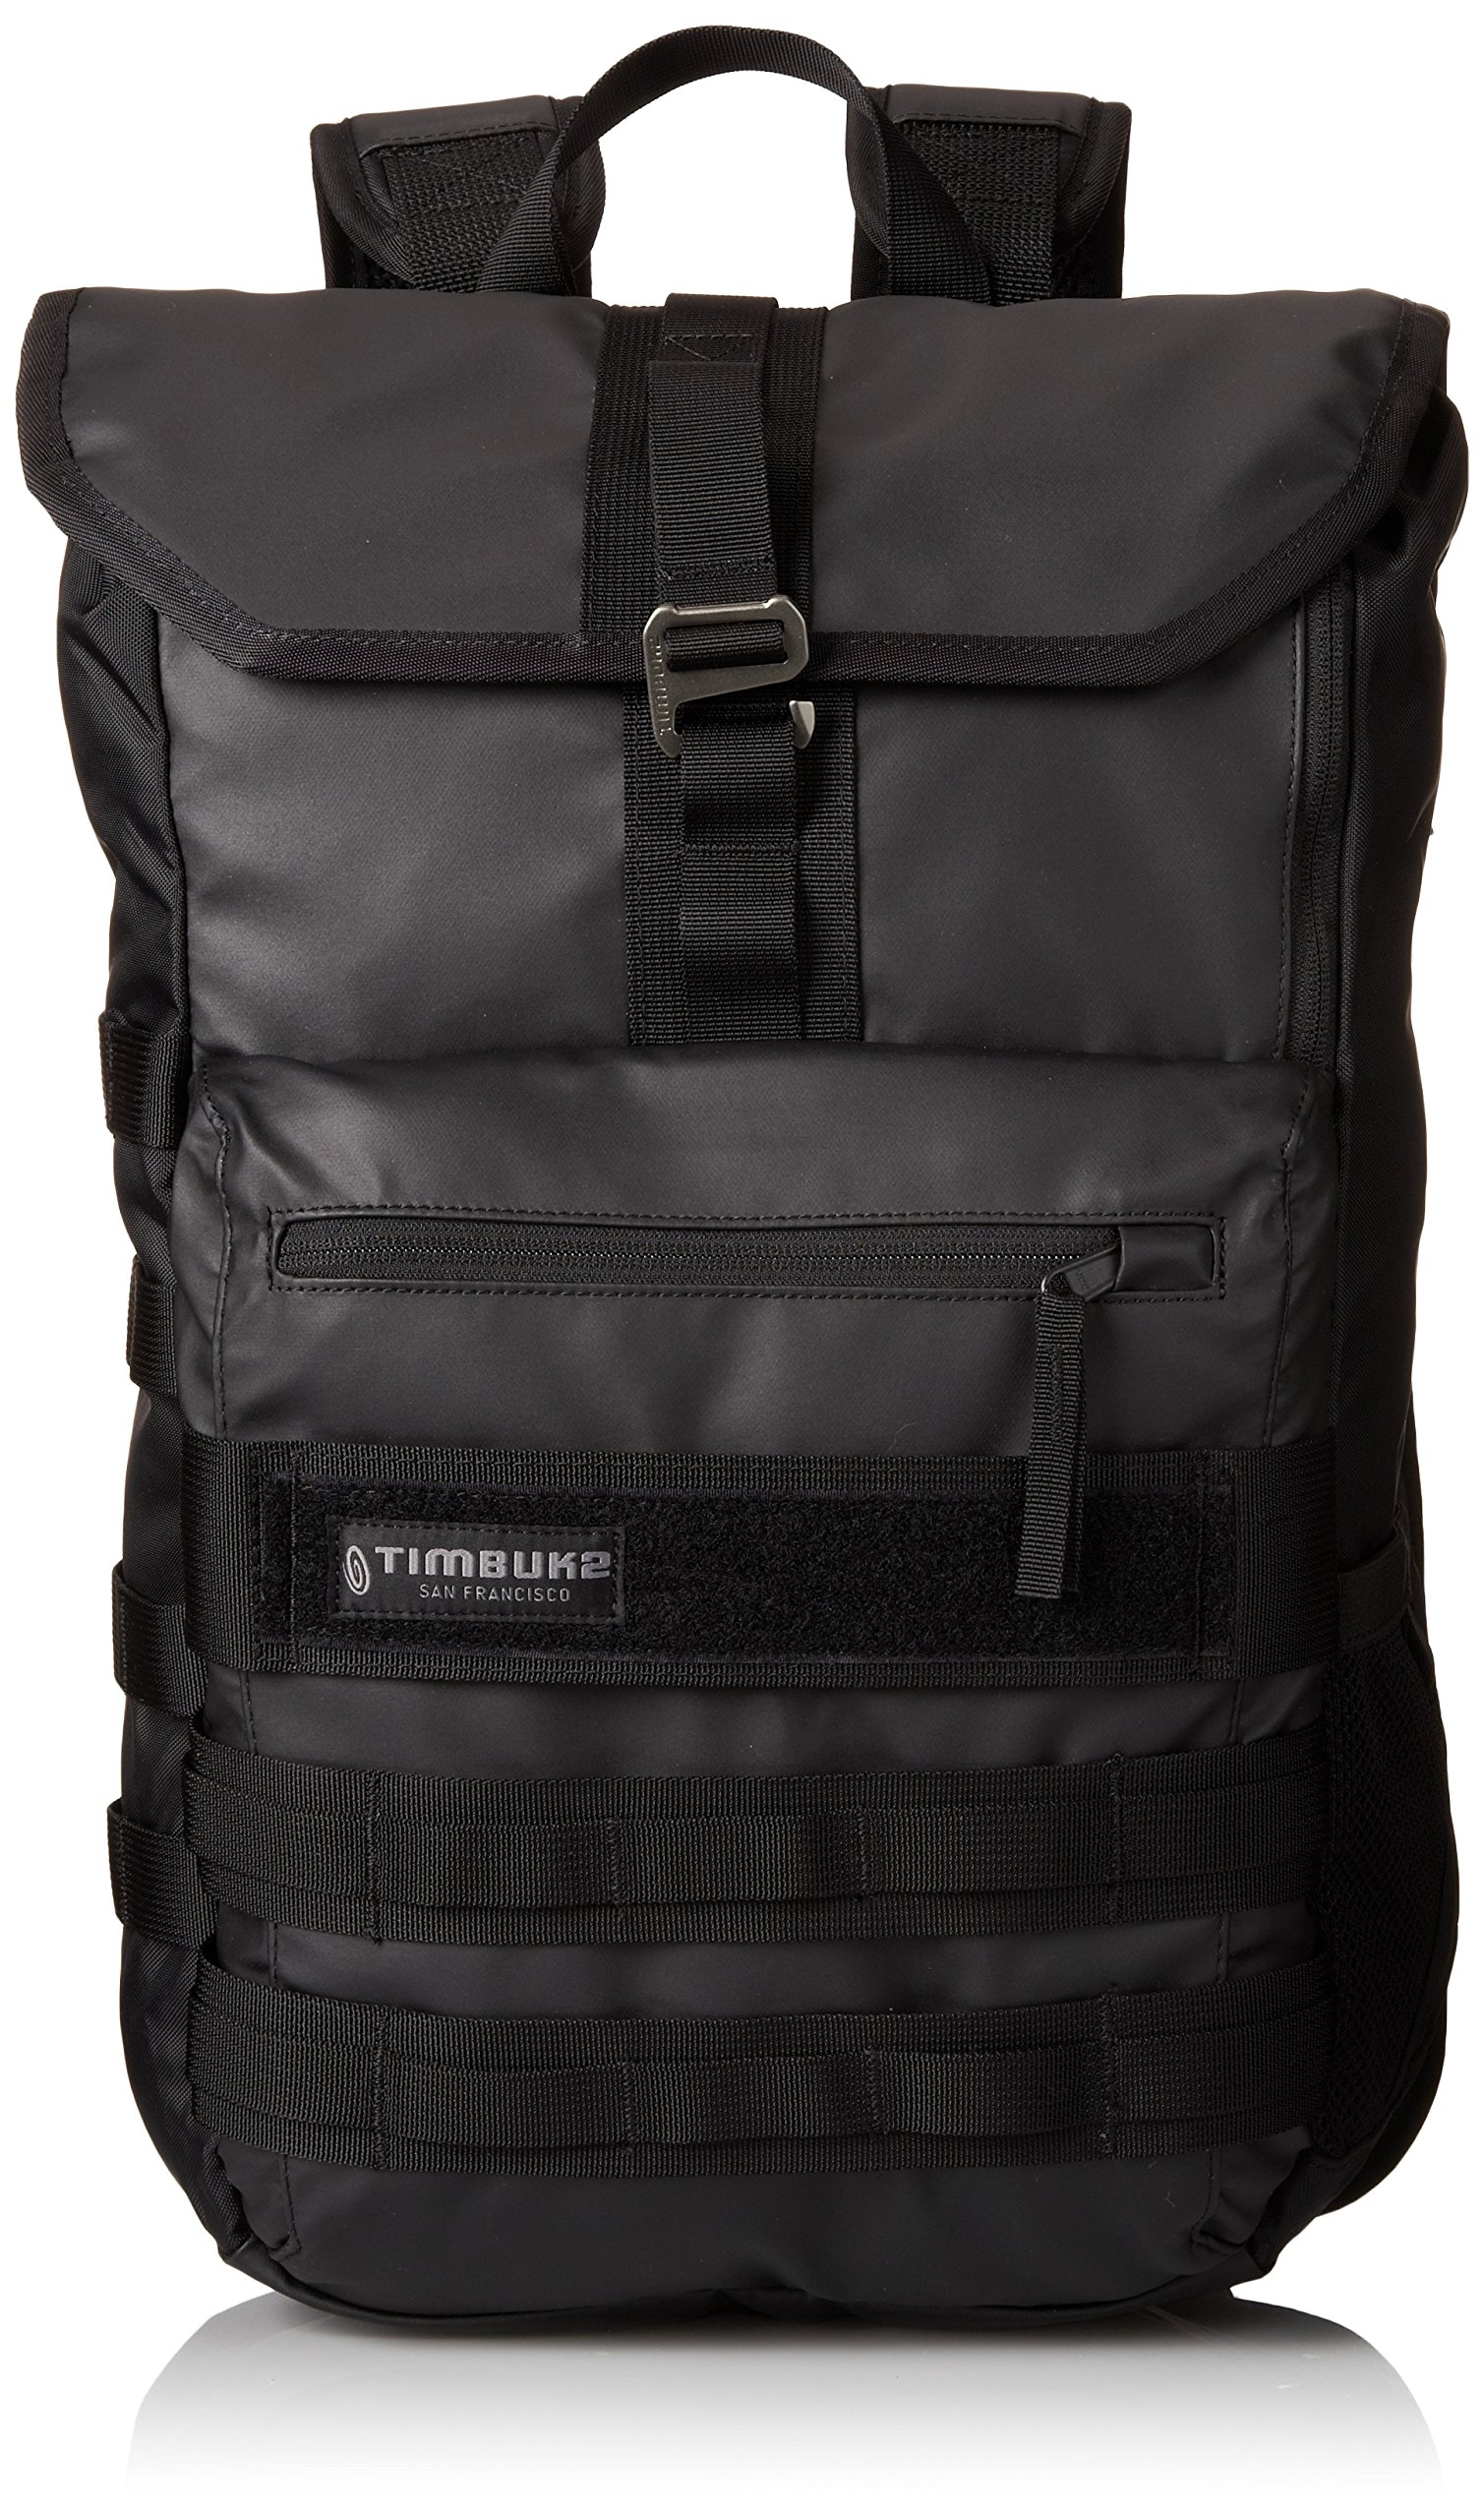 Timbuk2 306-3-2007 Spire Laptop Backpack, Black, One Size by Timbuk2